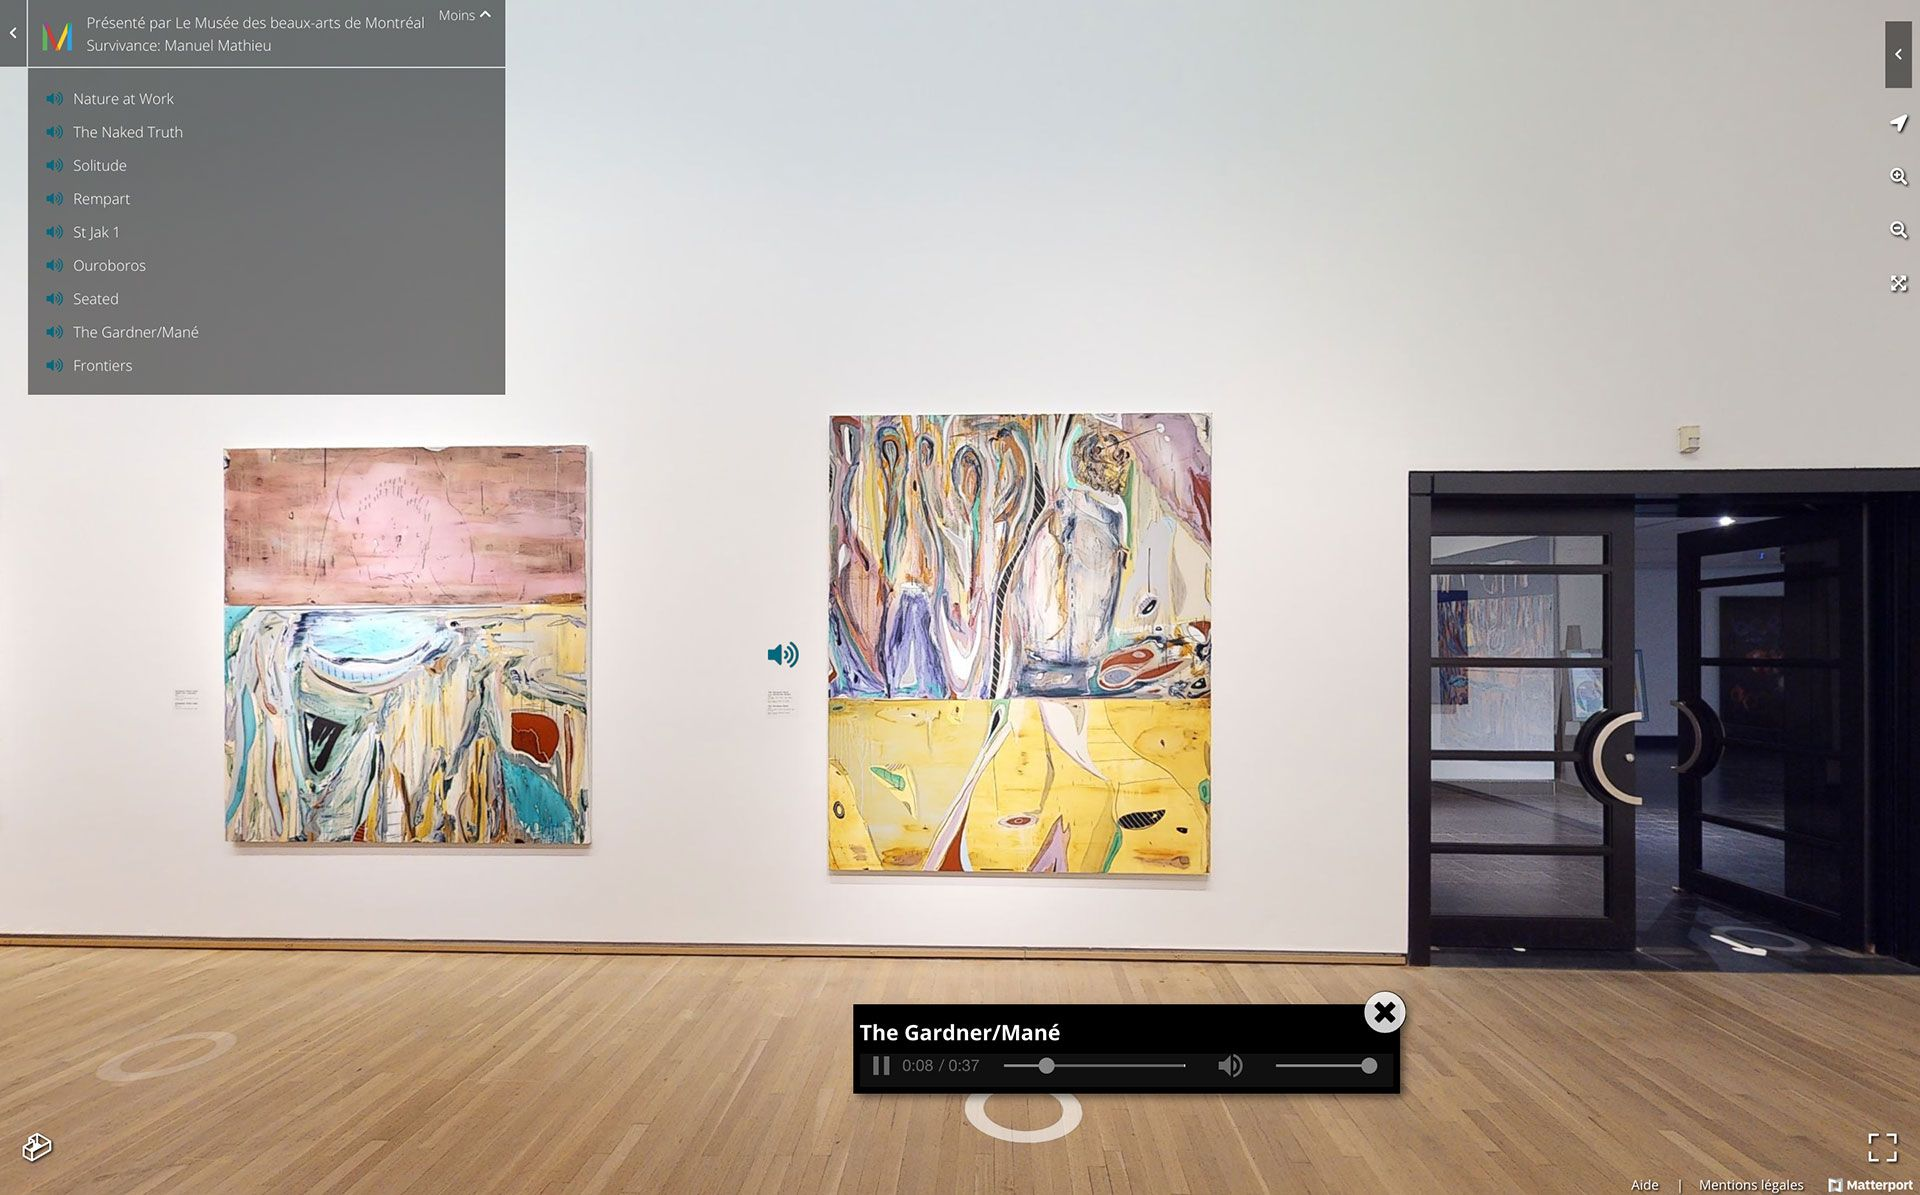 View of the virtual edition of the exhibition Manuel Mathieu: Survivance